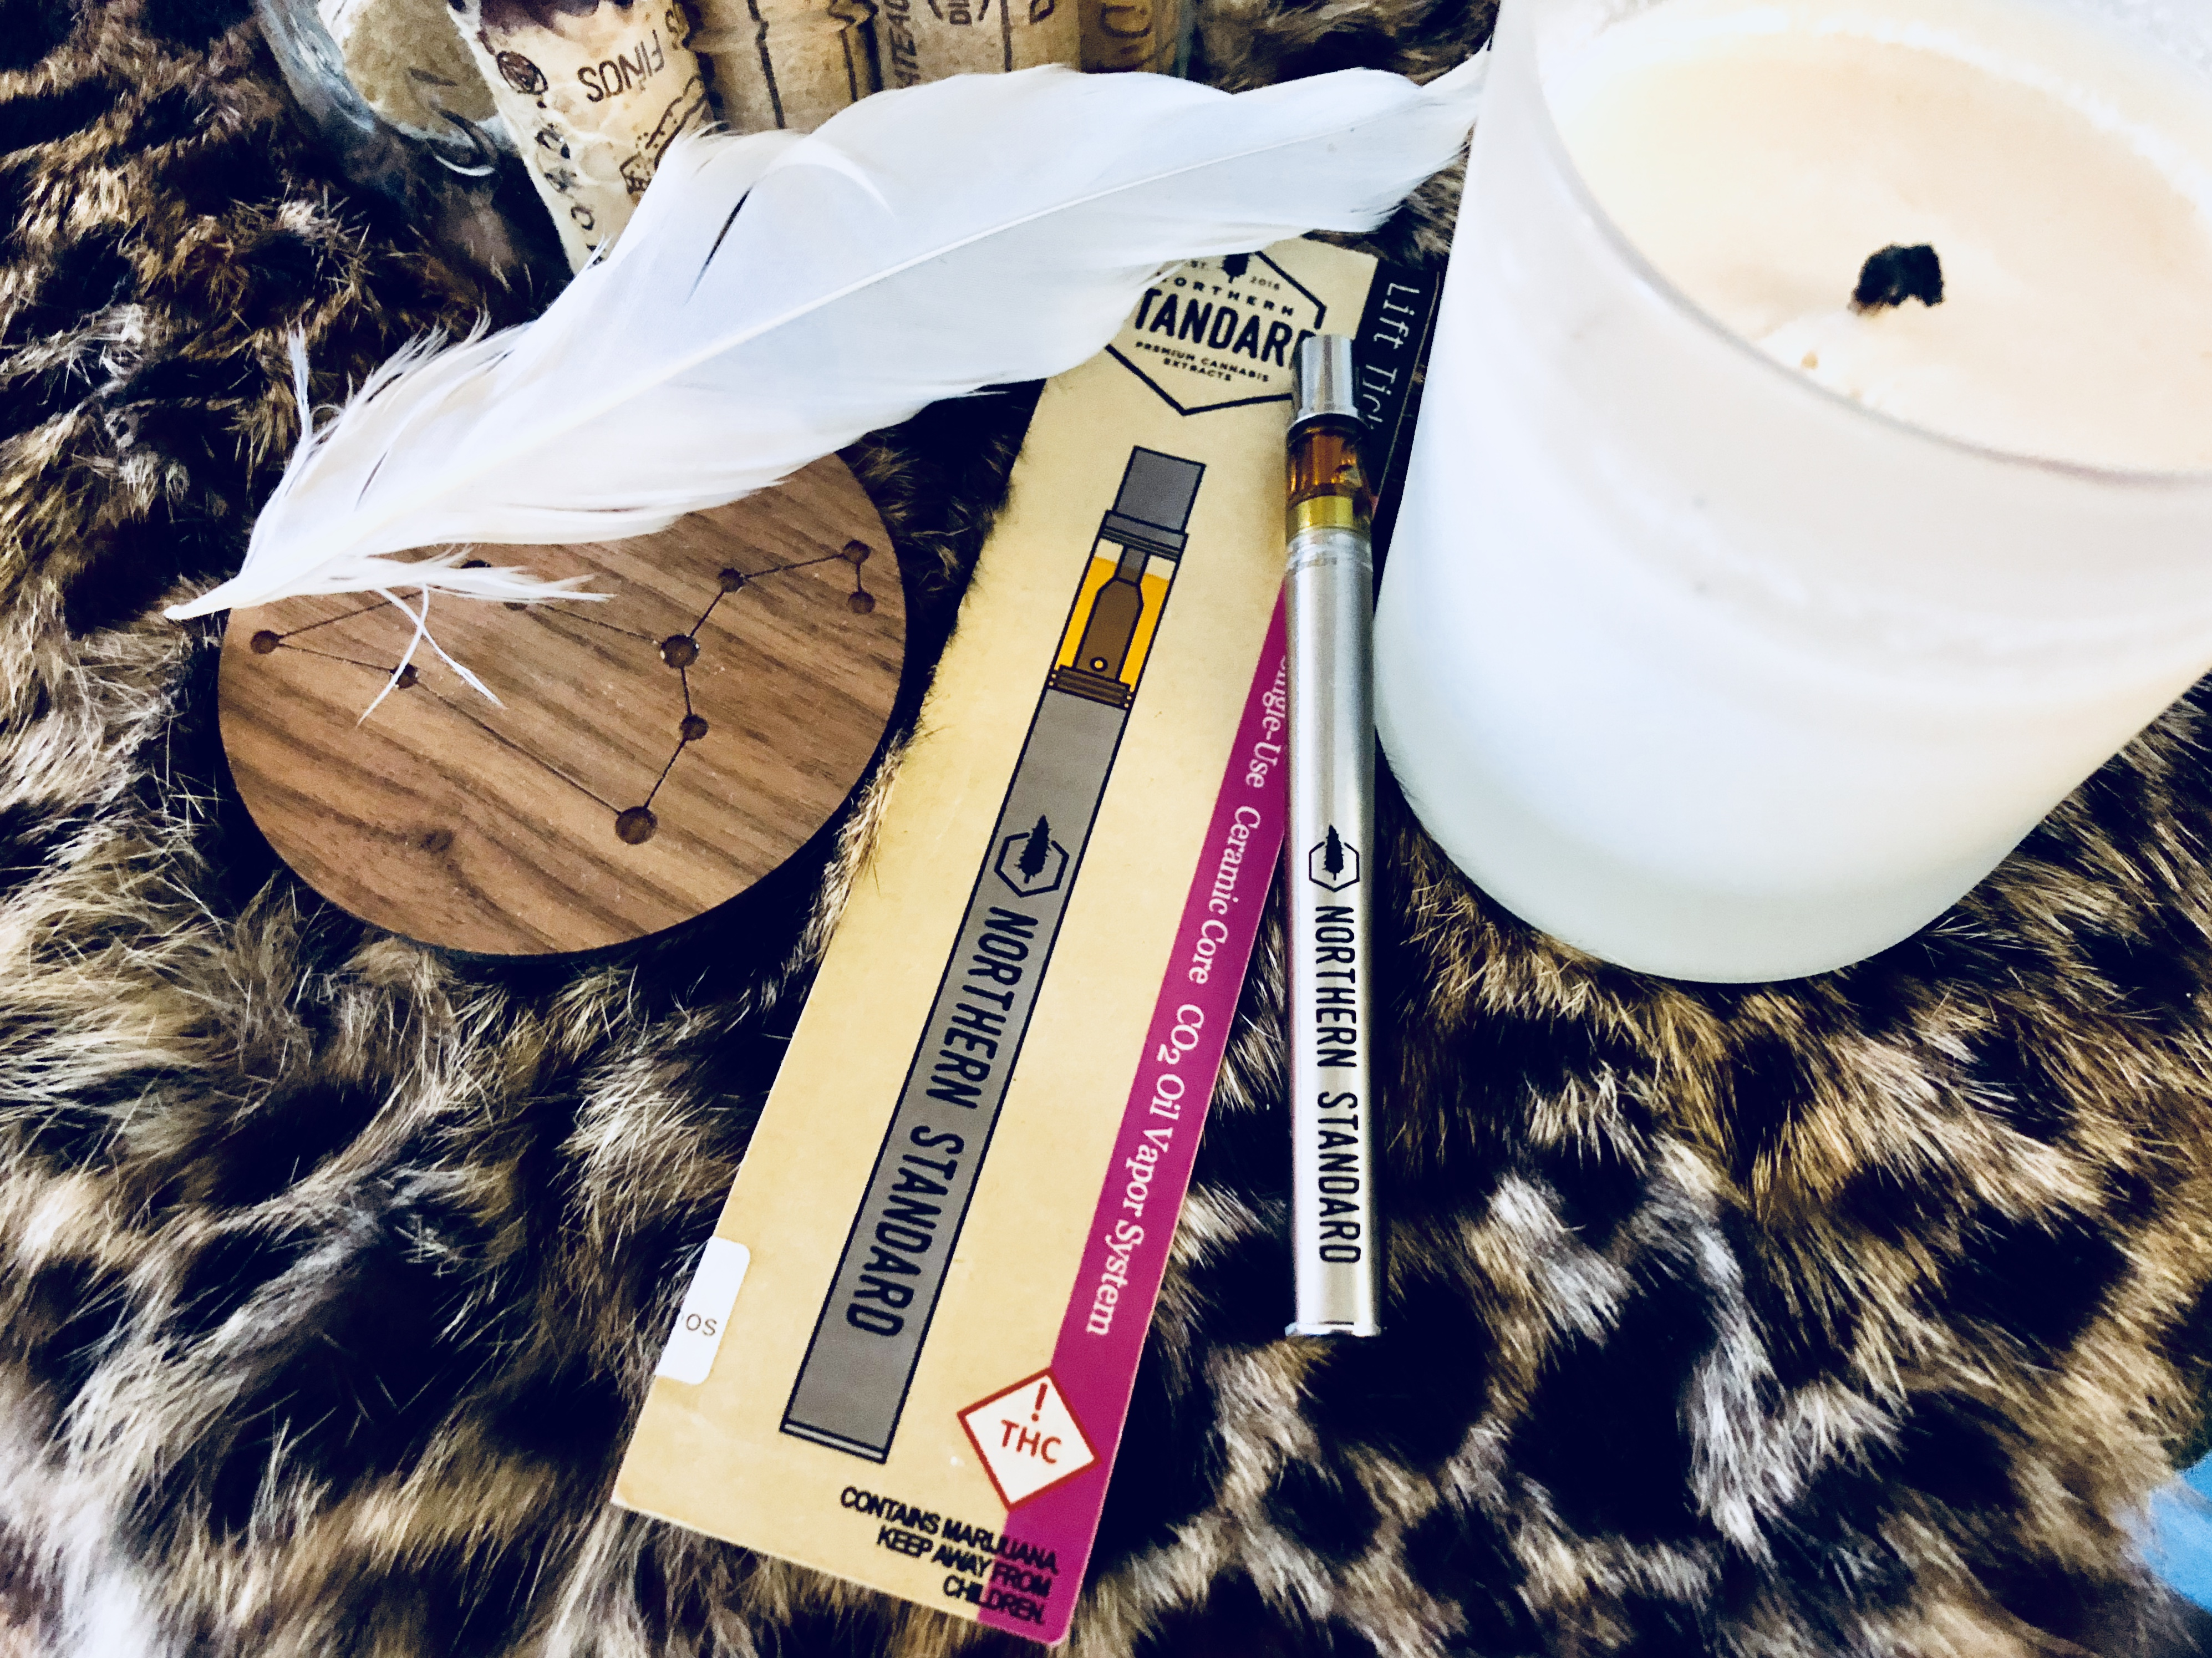 Product Reviews – The Mary Jane Experience